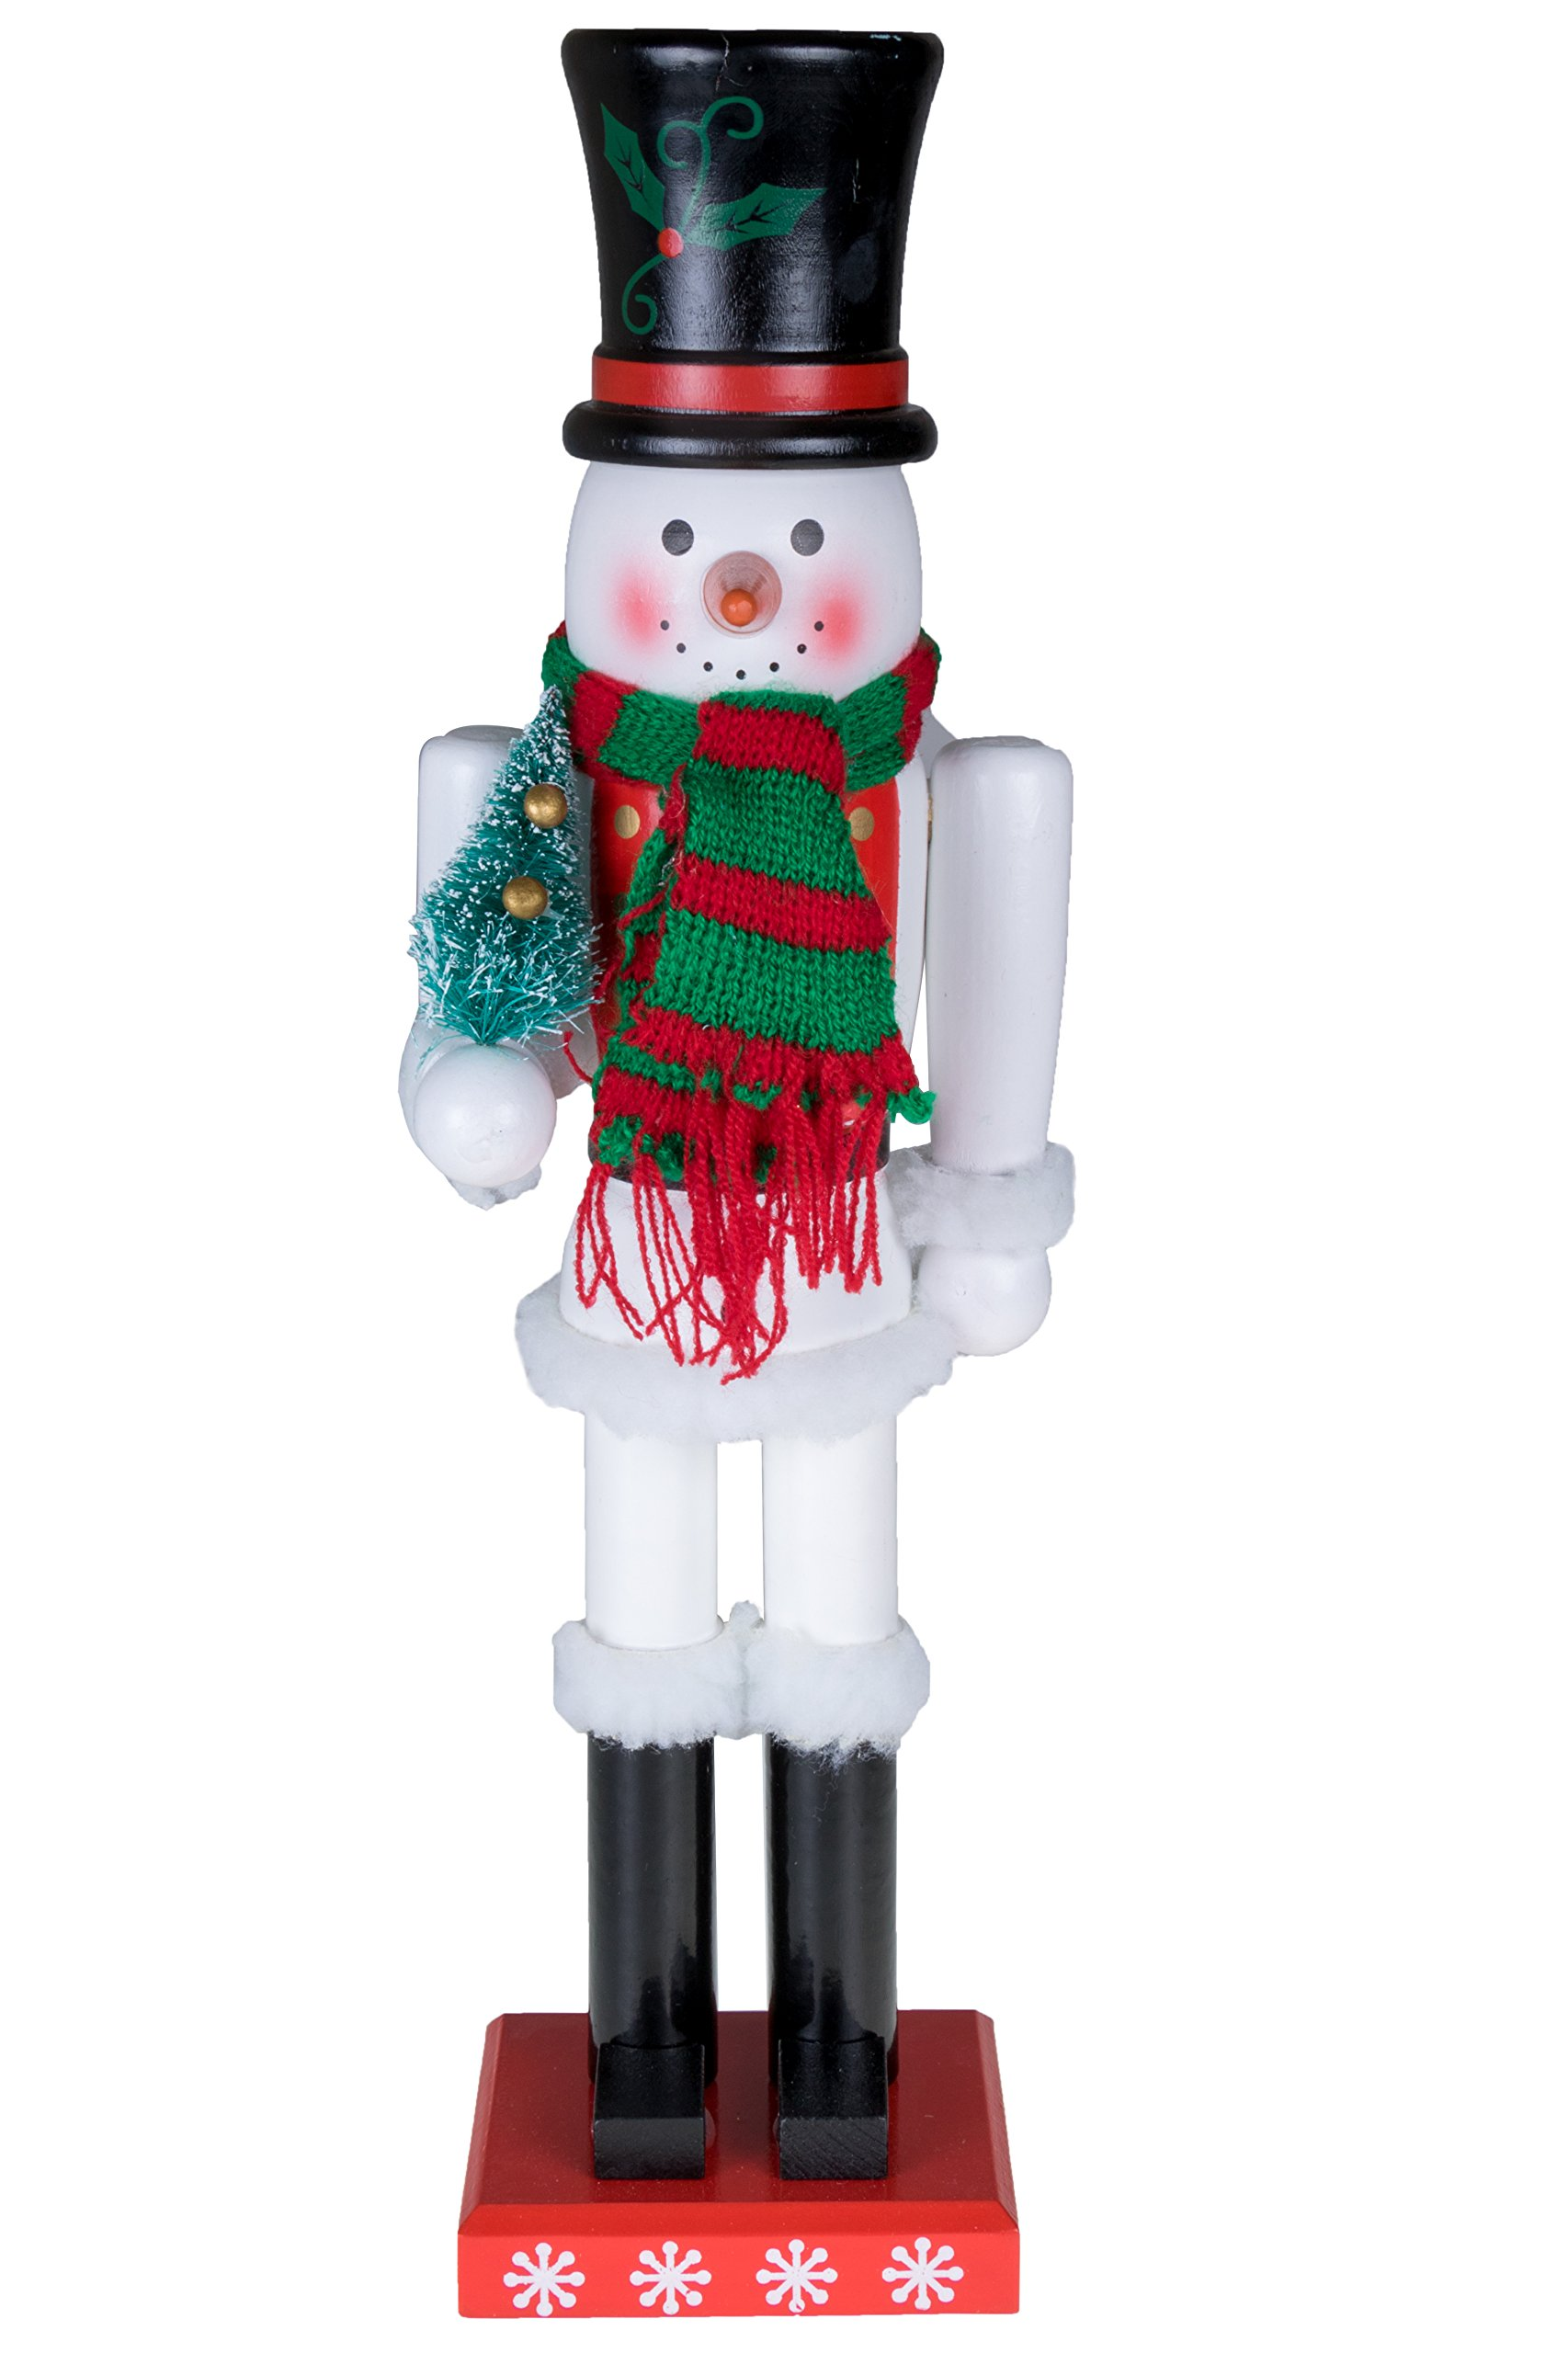 Snowman Nutcracker by Clever Creations | Black Top Hat and Red & Green Scarf with Miniature Christmas Tree | Collectible Wooden Holiday Nutcracker | Festive Holiday Decor | 100% Wood | 15'' Tall